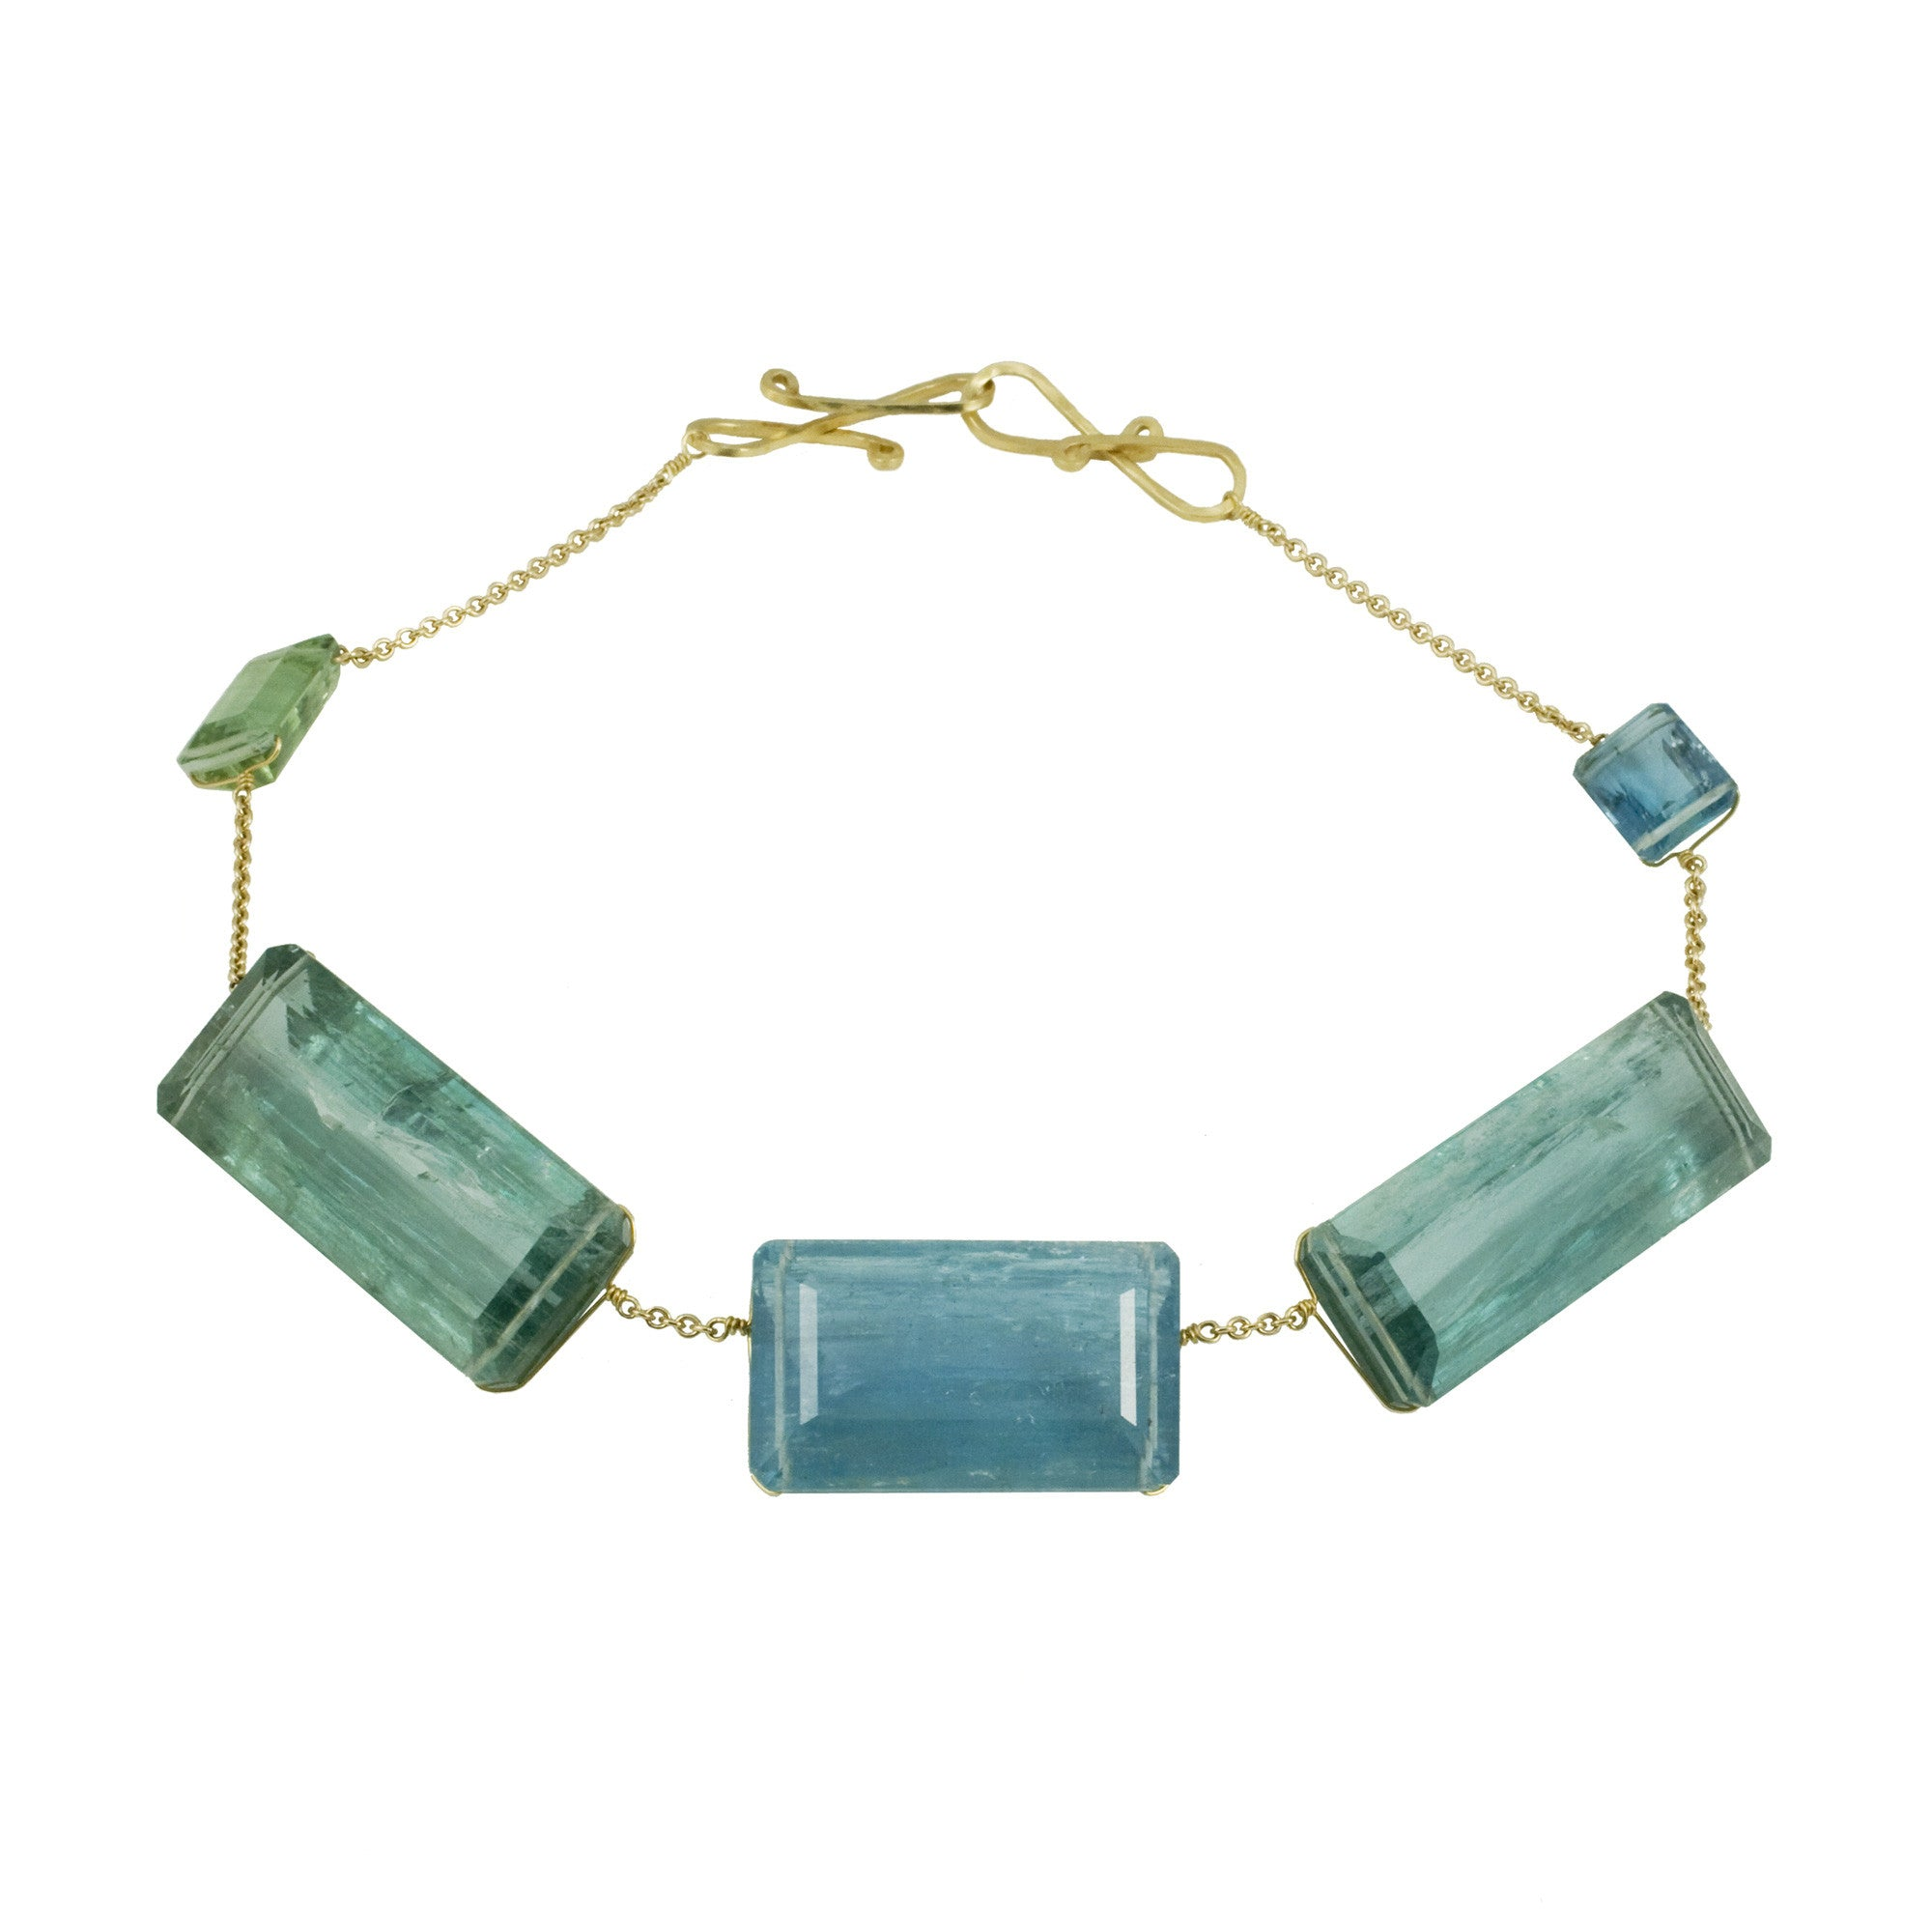 GRACE V aquamarine necklace